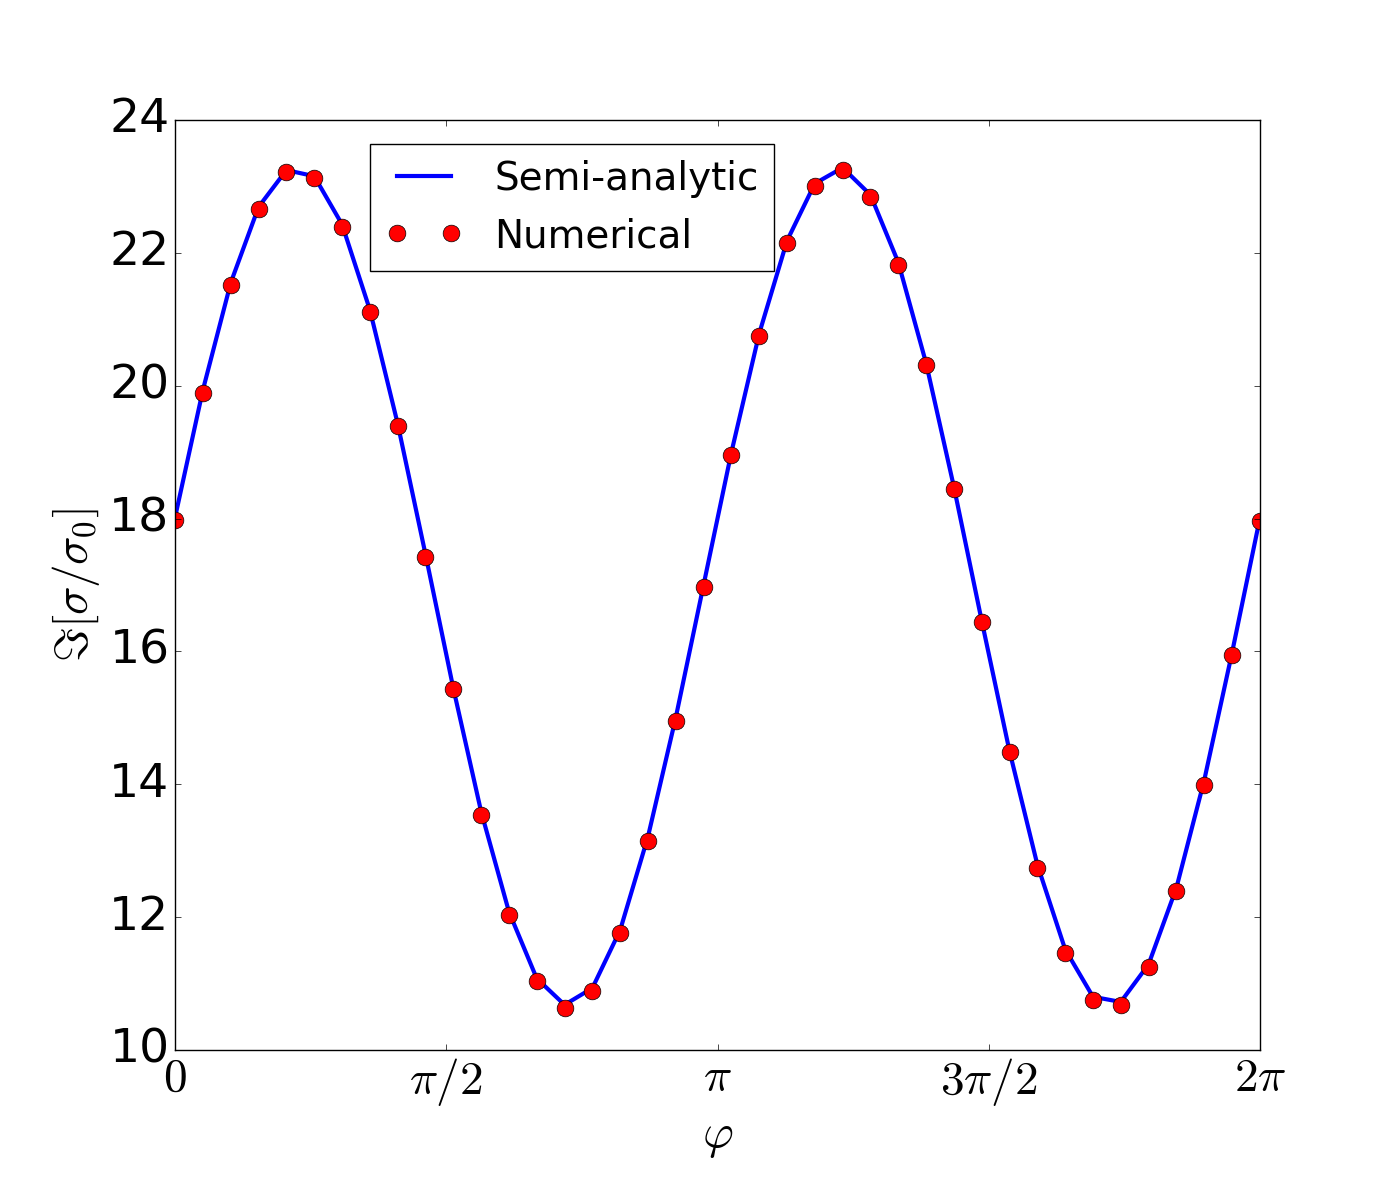 (Color on-line.) Comparision between the semi-analtical approach and the numerical one for the imaginary part of the longitudinal conductivity, showing the validity of the semi-analytical approximation obtained in section